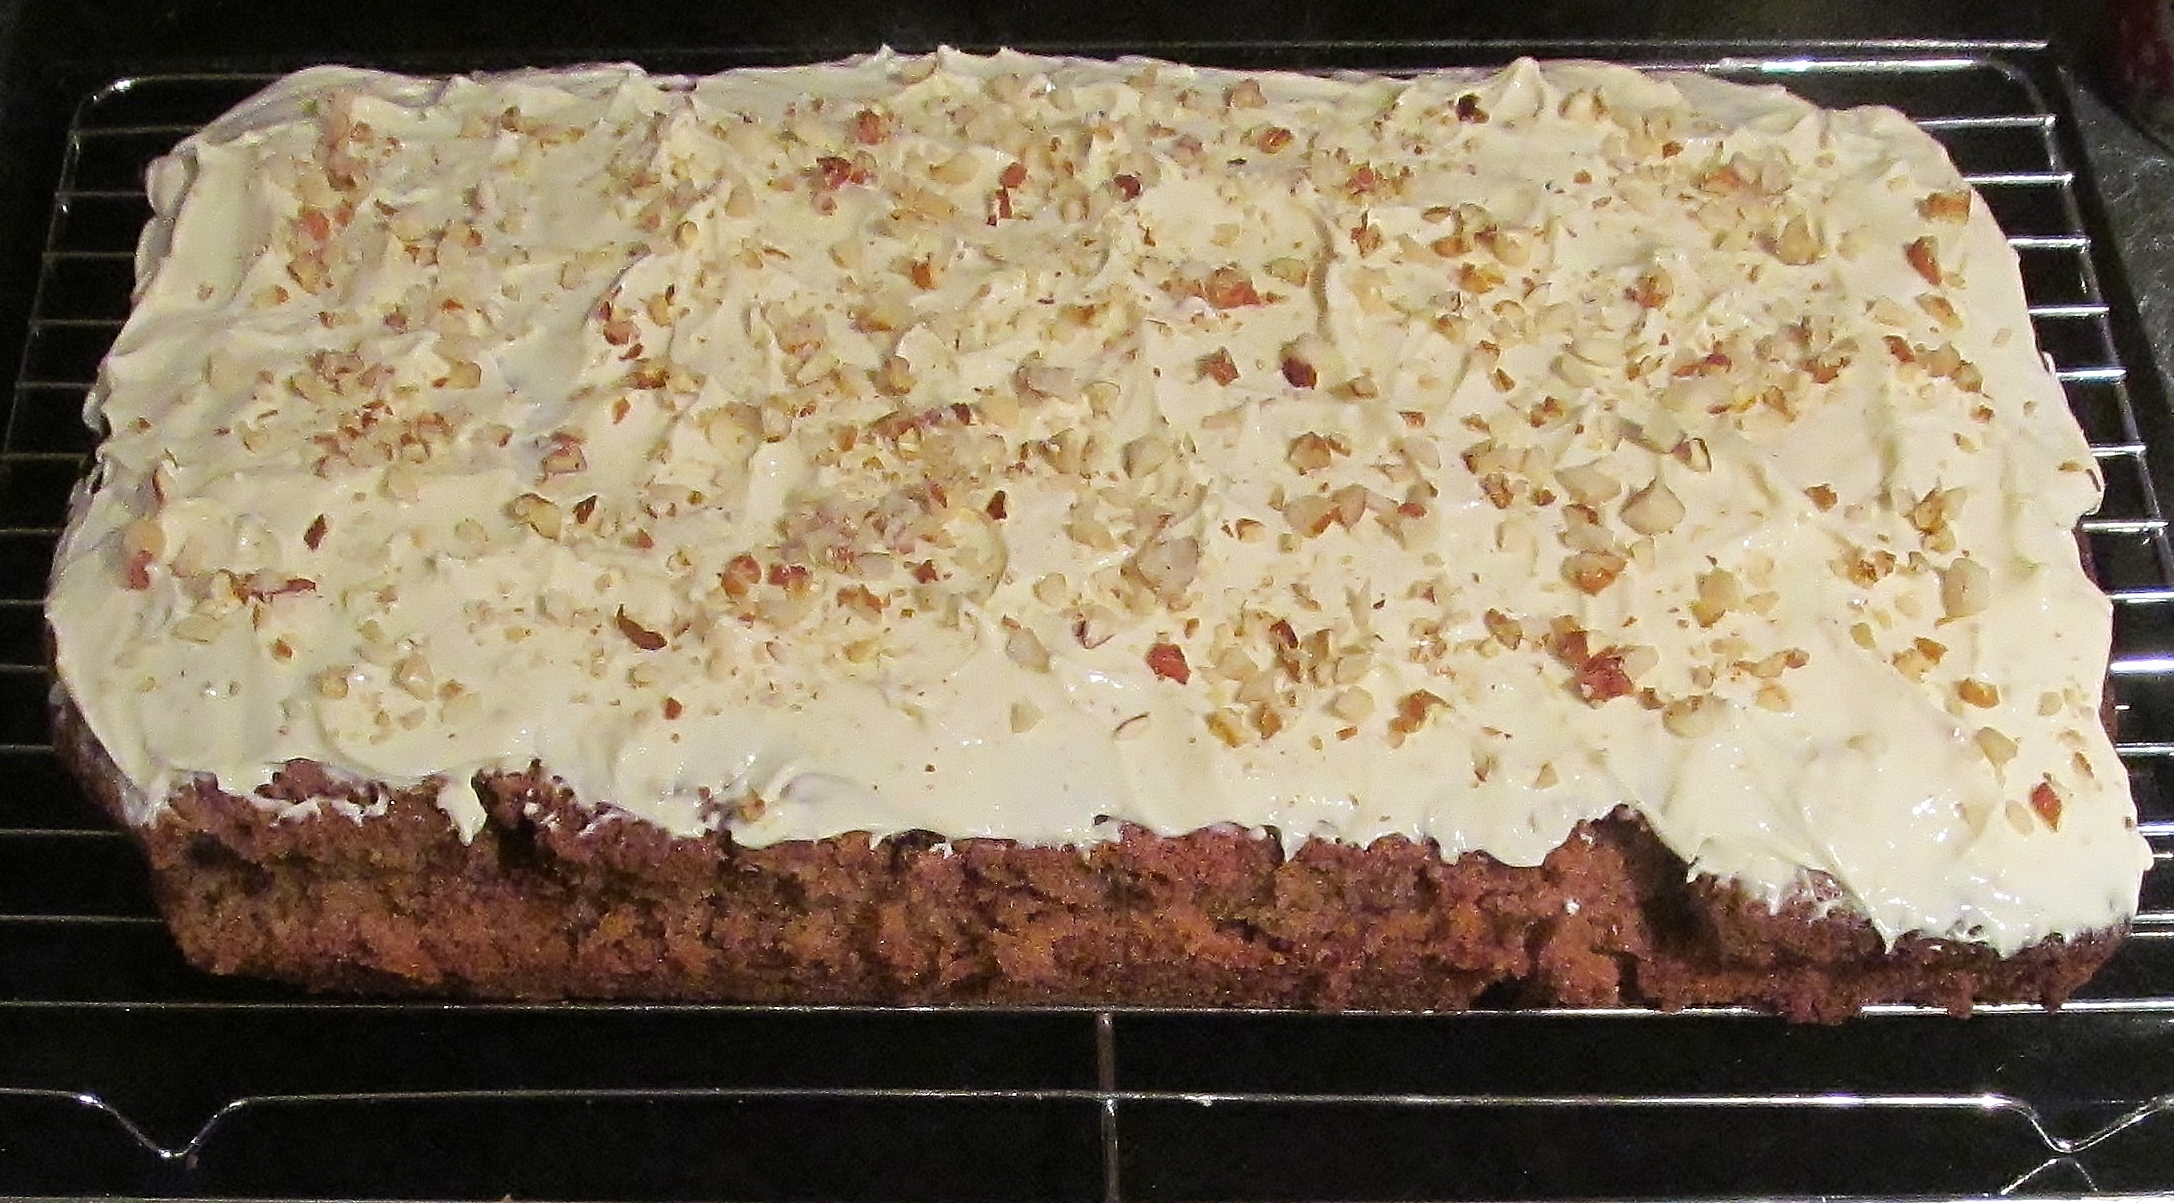 Carrot Cake Recipe Uk Bbc: Carrot Cake Mary Berry